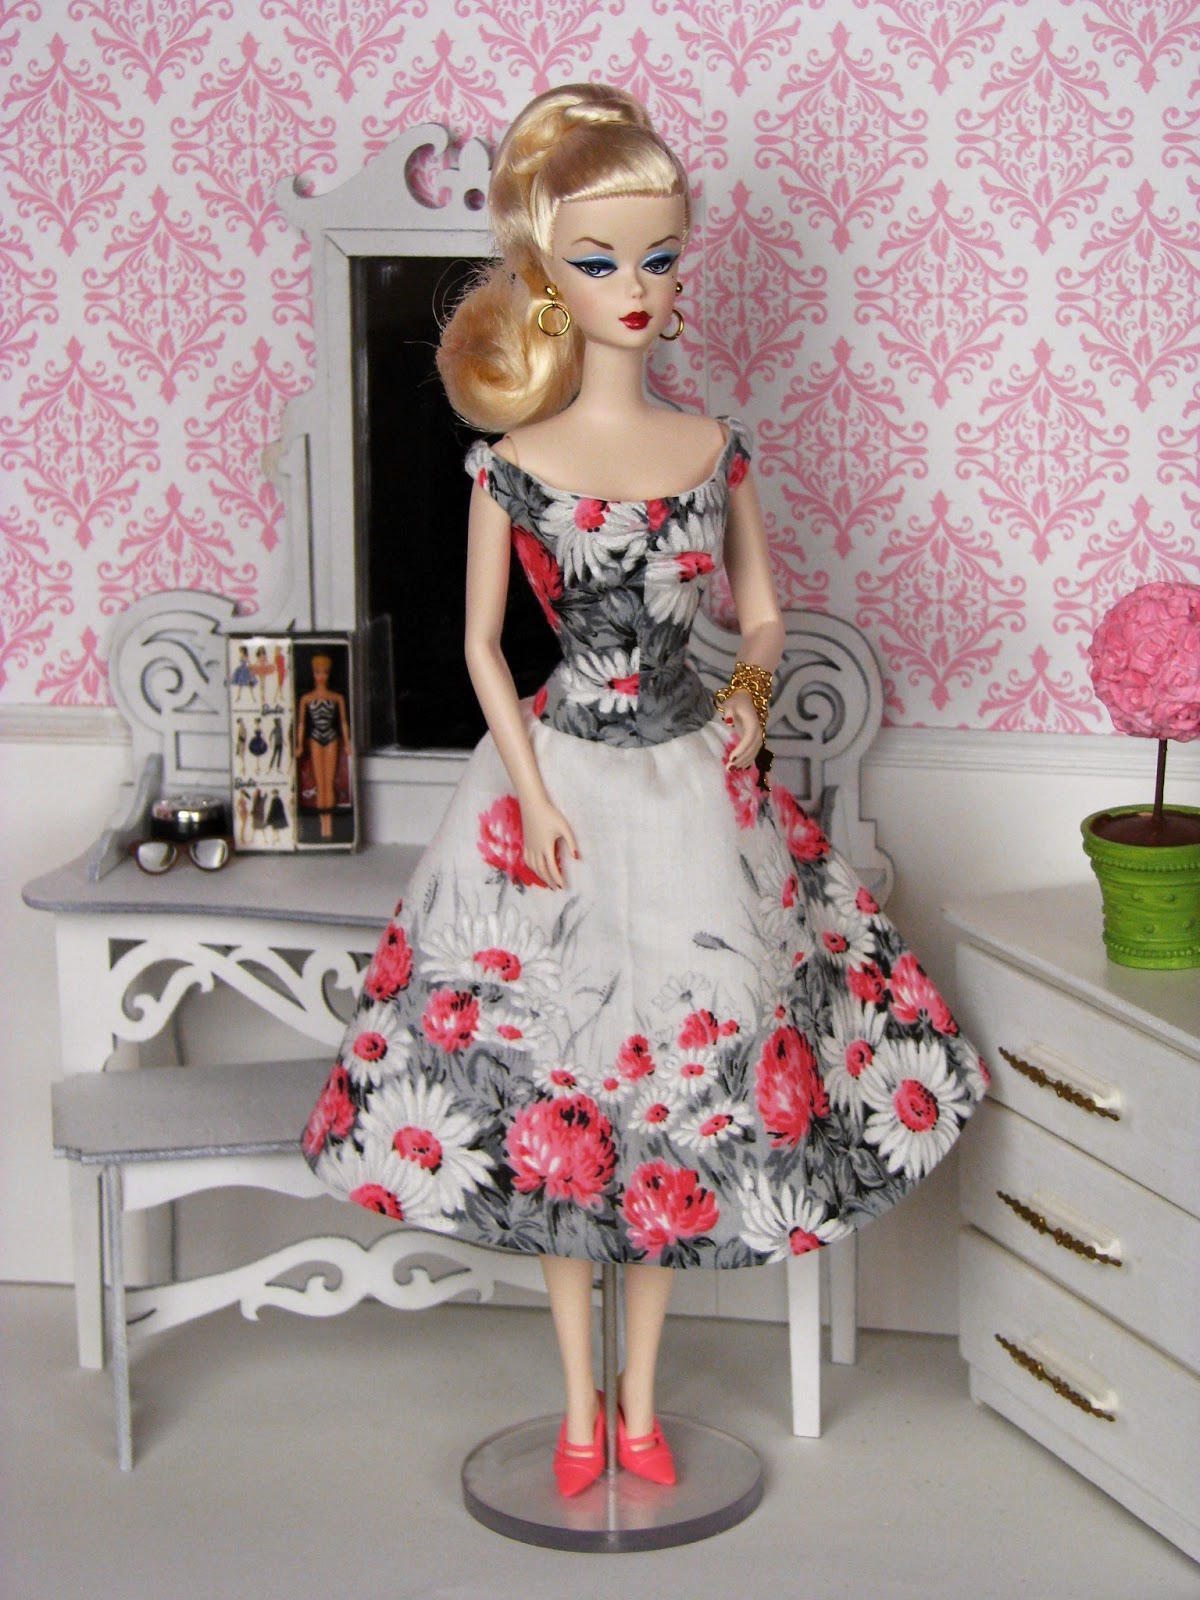 Trolling JoAnn Fabrics As I Love To Do And Came Across The Book Hankie Couture By Marsha Greenberg Has Been Making Barbie Dresses For Years